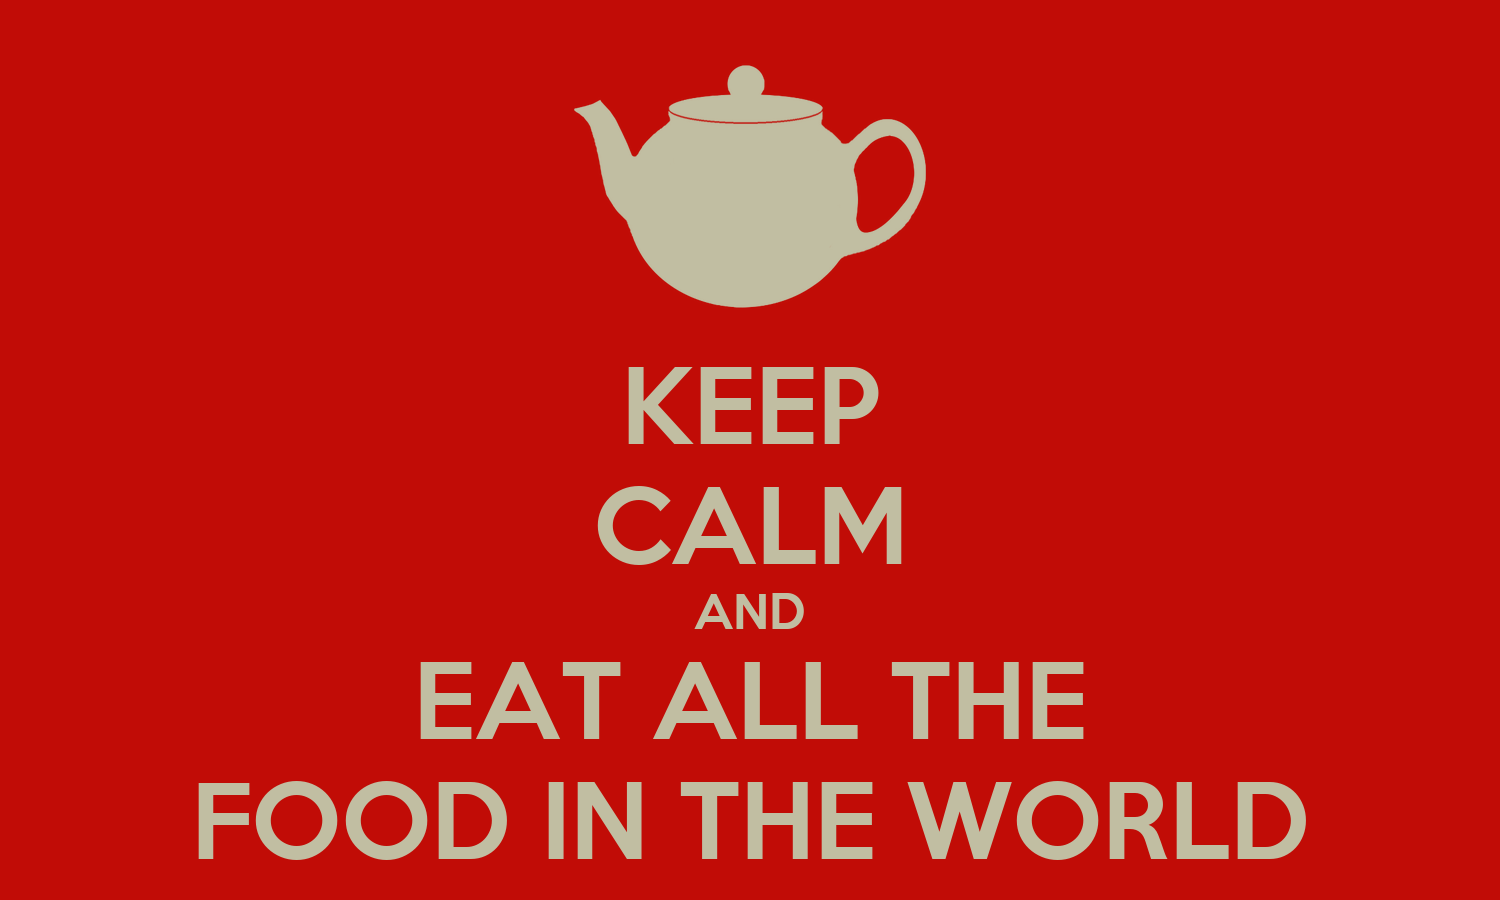 http://sd.keepcalm-o-matic.co.uk/i/keep-calm-and-eat-all-the-food-in-the-world.png